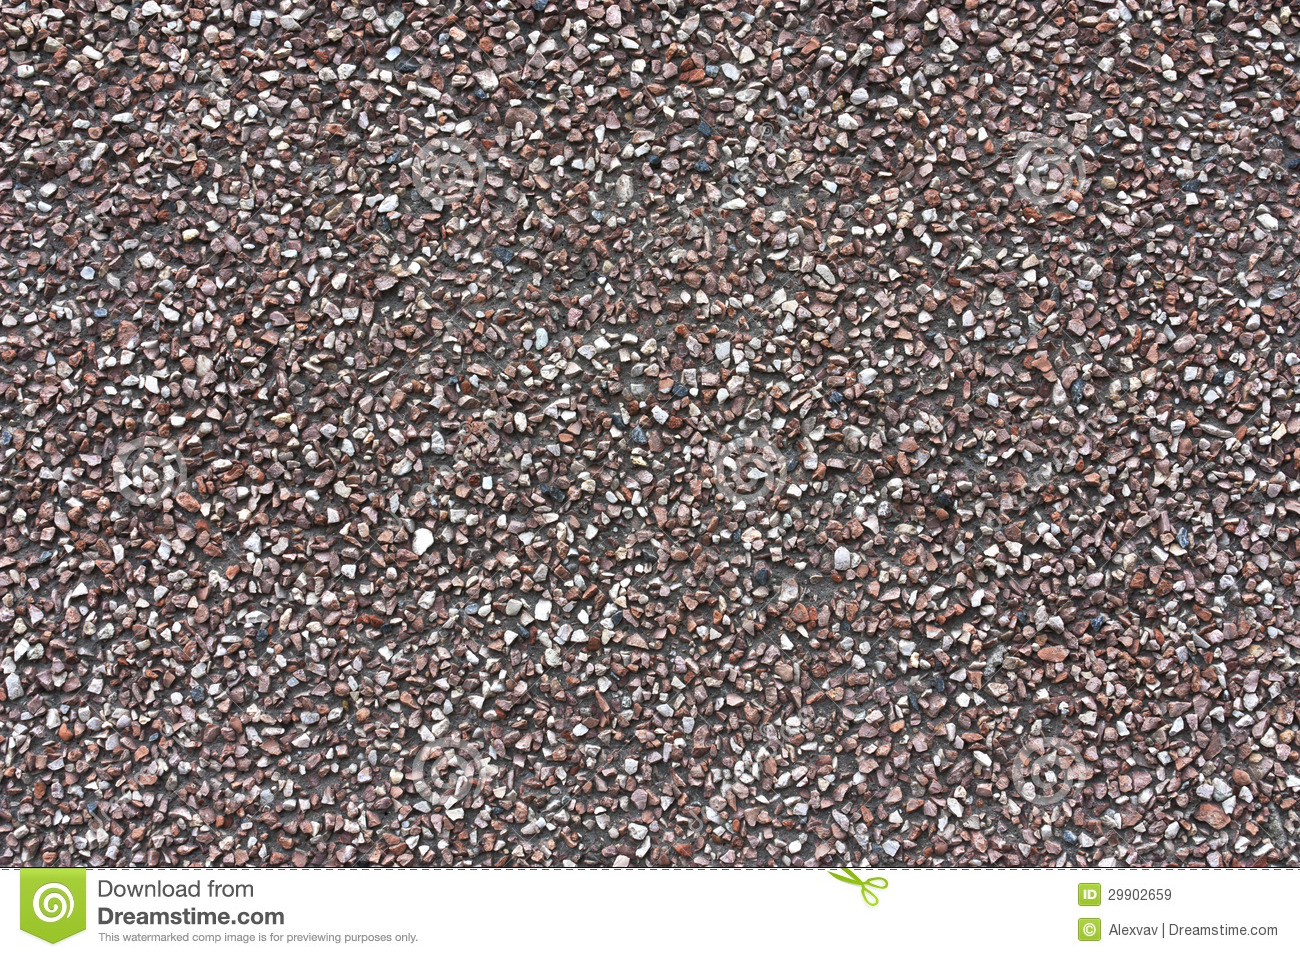 Grain Bin Floor Plans Wall Texture With Small Stone Chips Royalty Free Stock